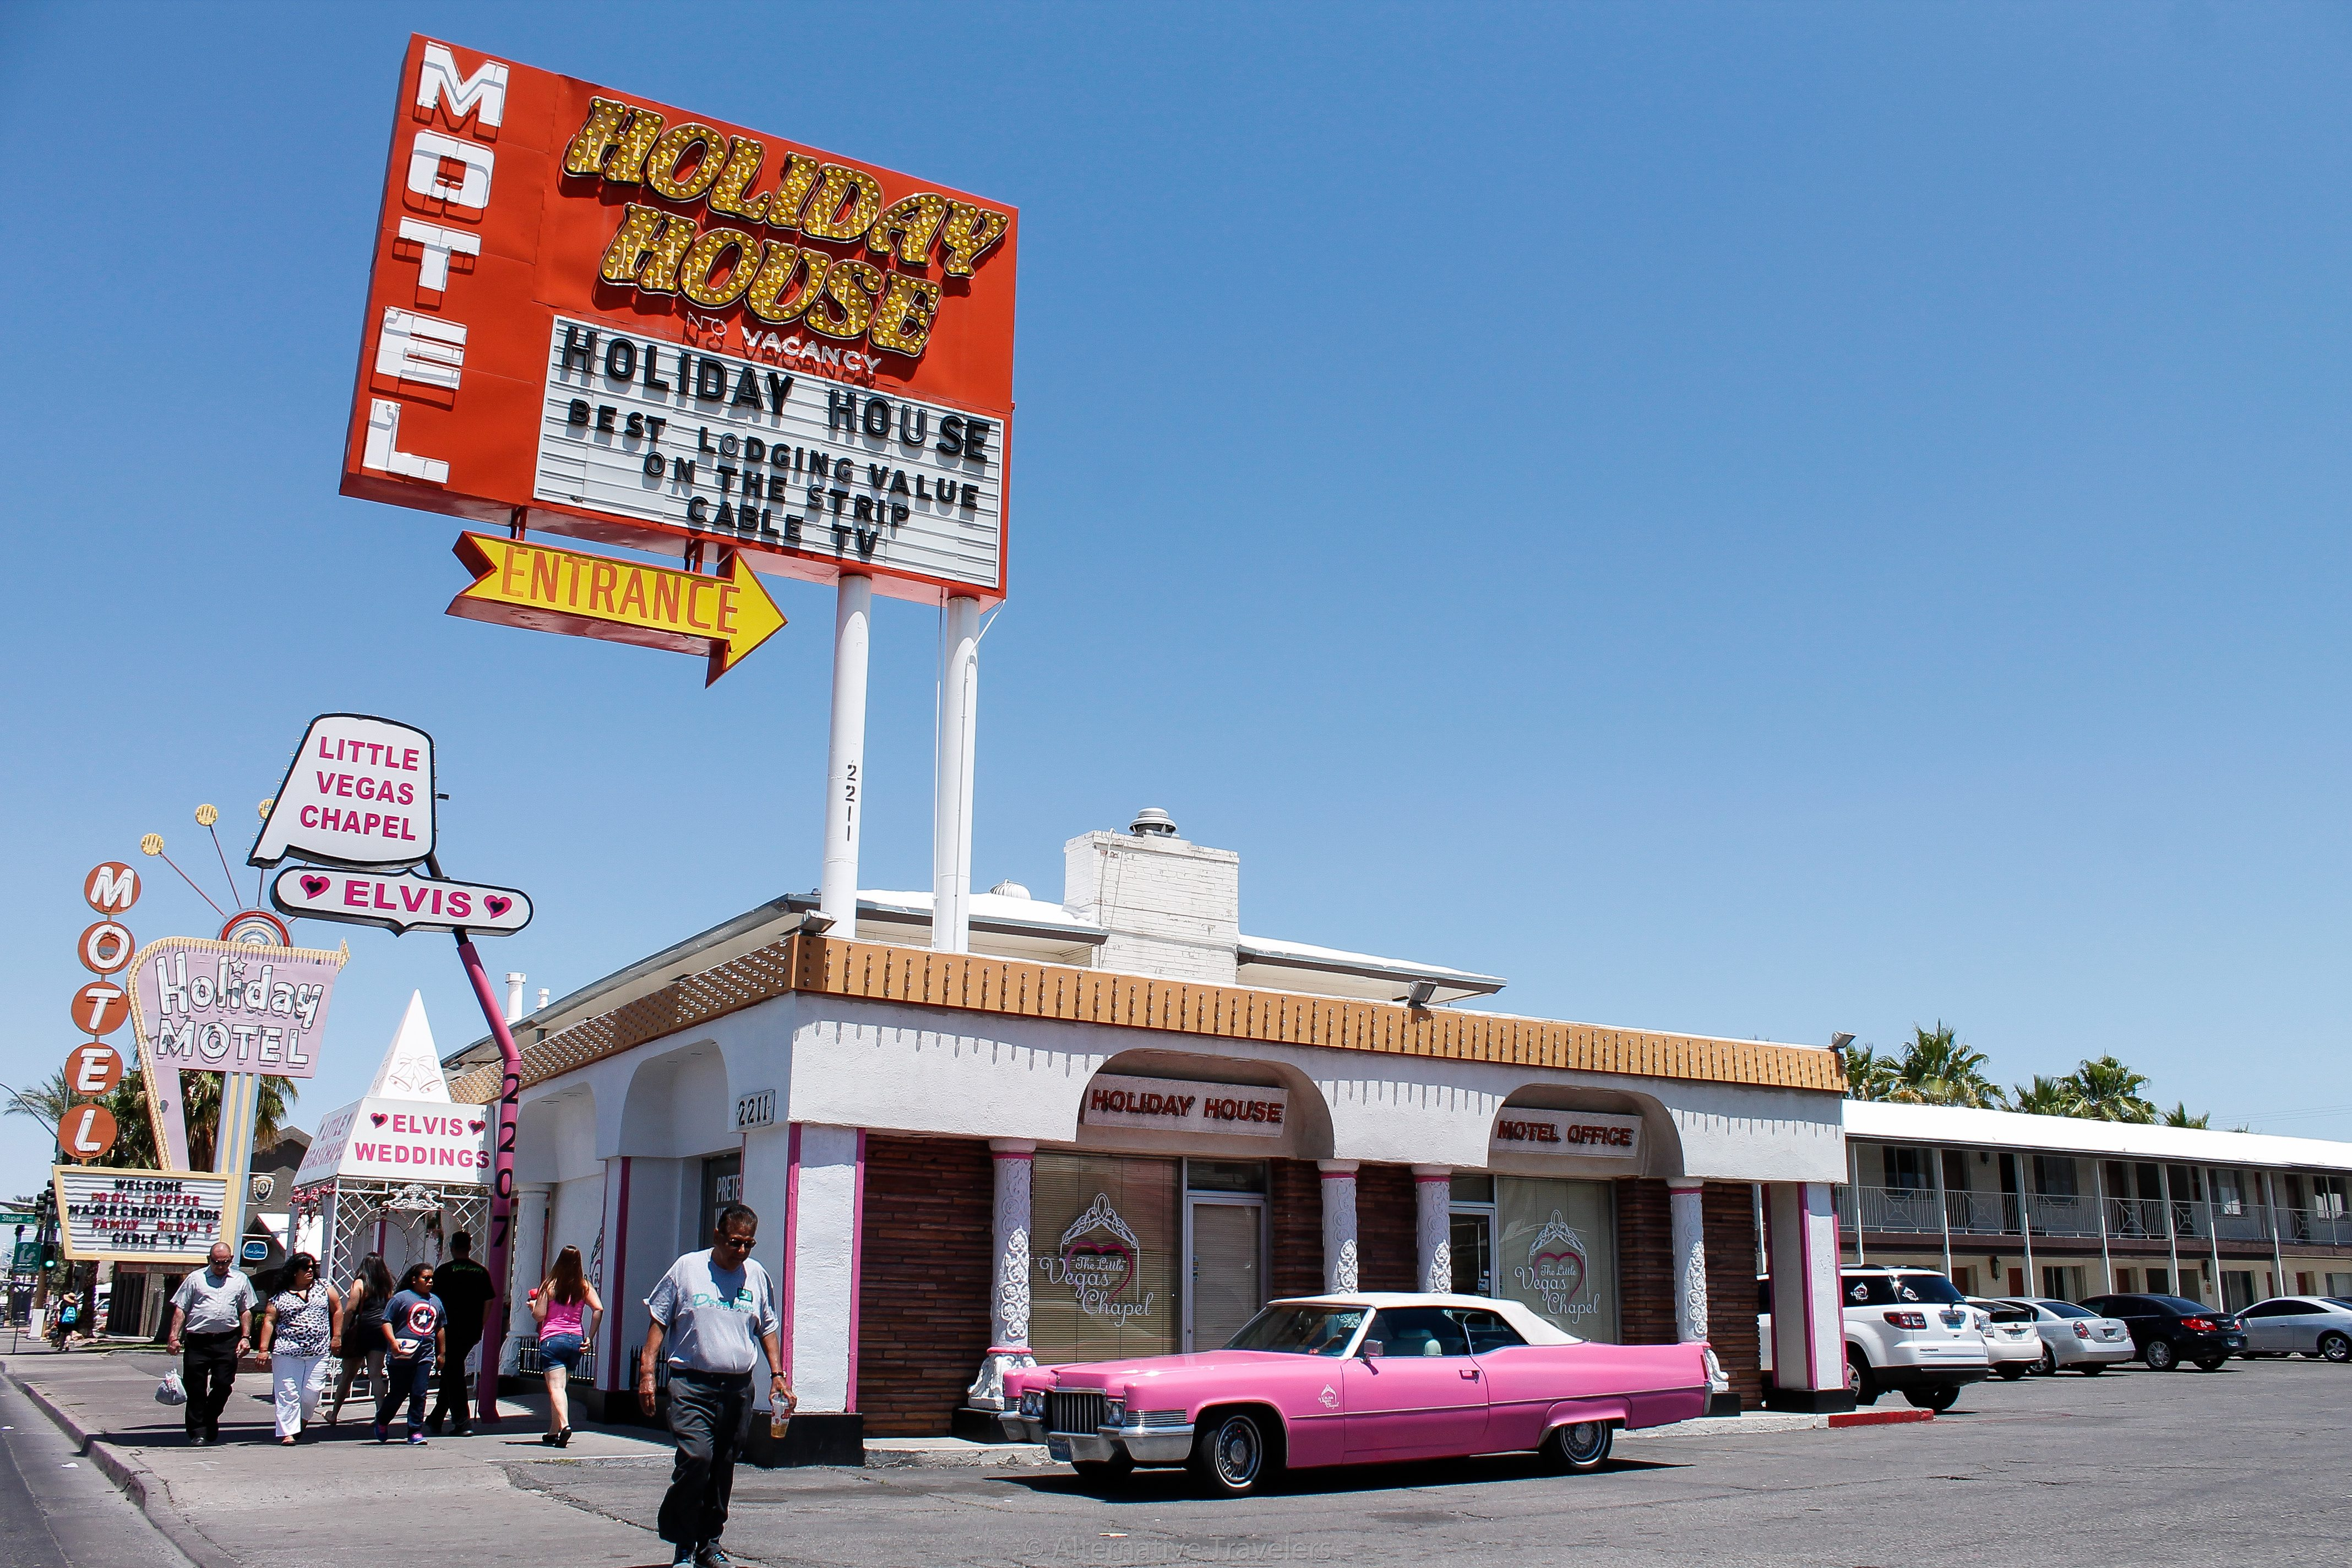 As we drove further down the strip, we got to the older Las Vegas. The nostalgic look was at least a little more interesting and not so opulent.